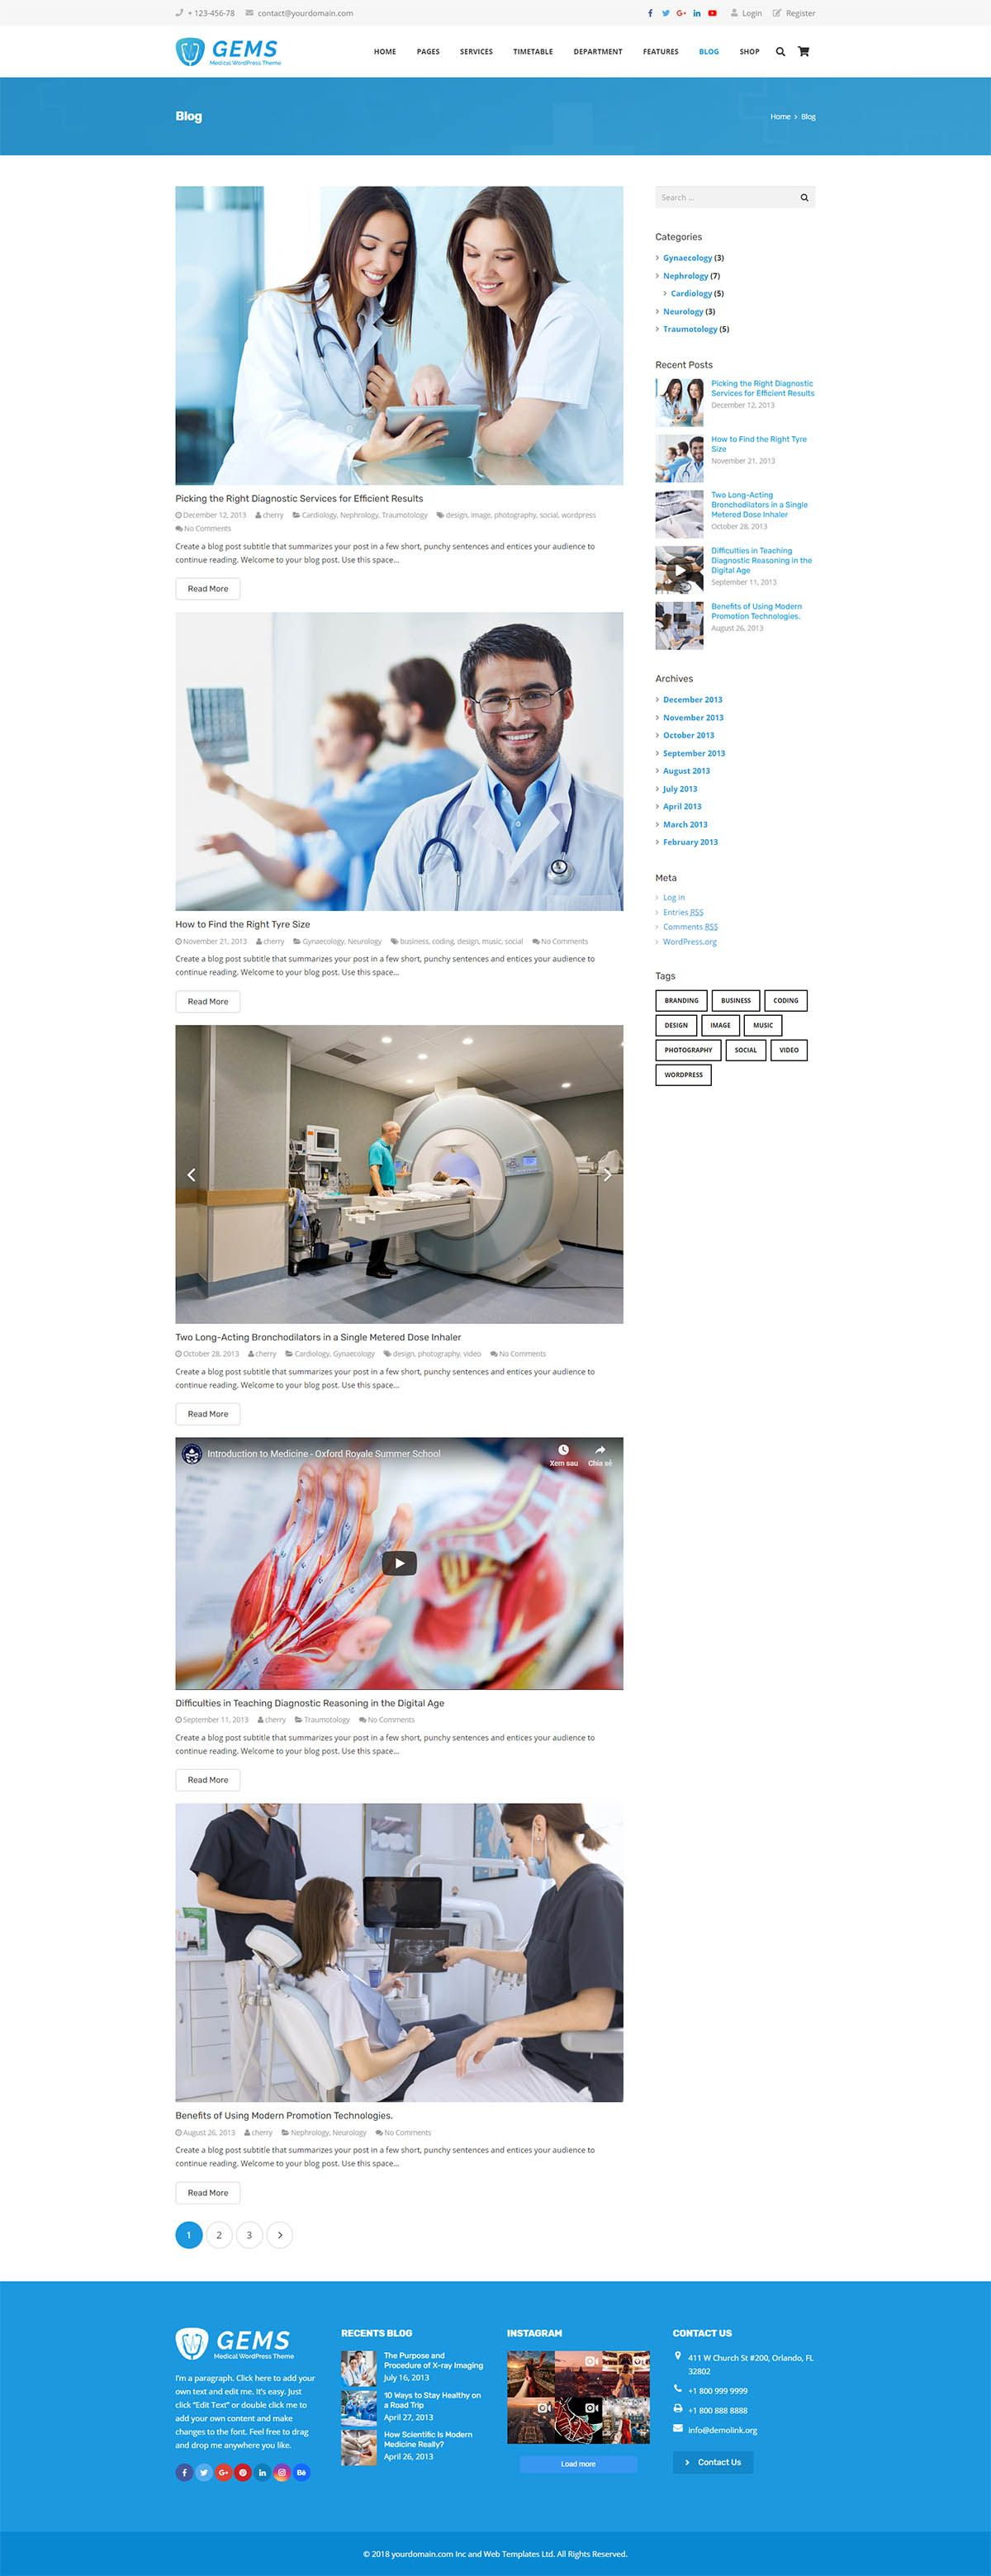 Gems - Medical Drag And Drop WordPress Theme Screenshot 8